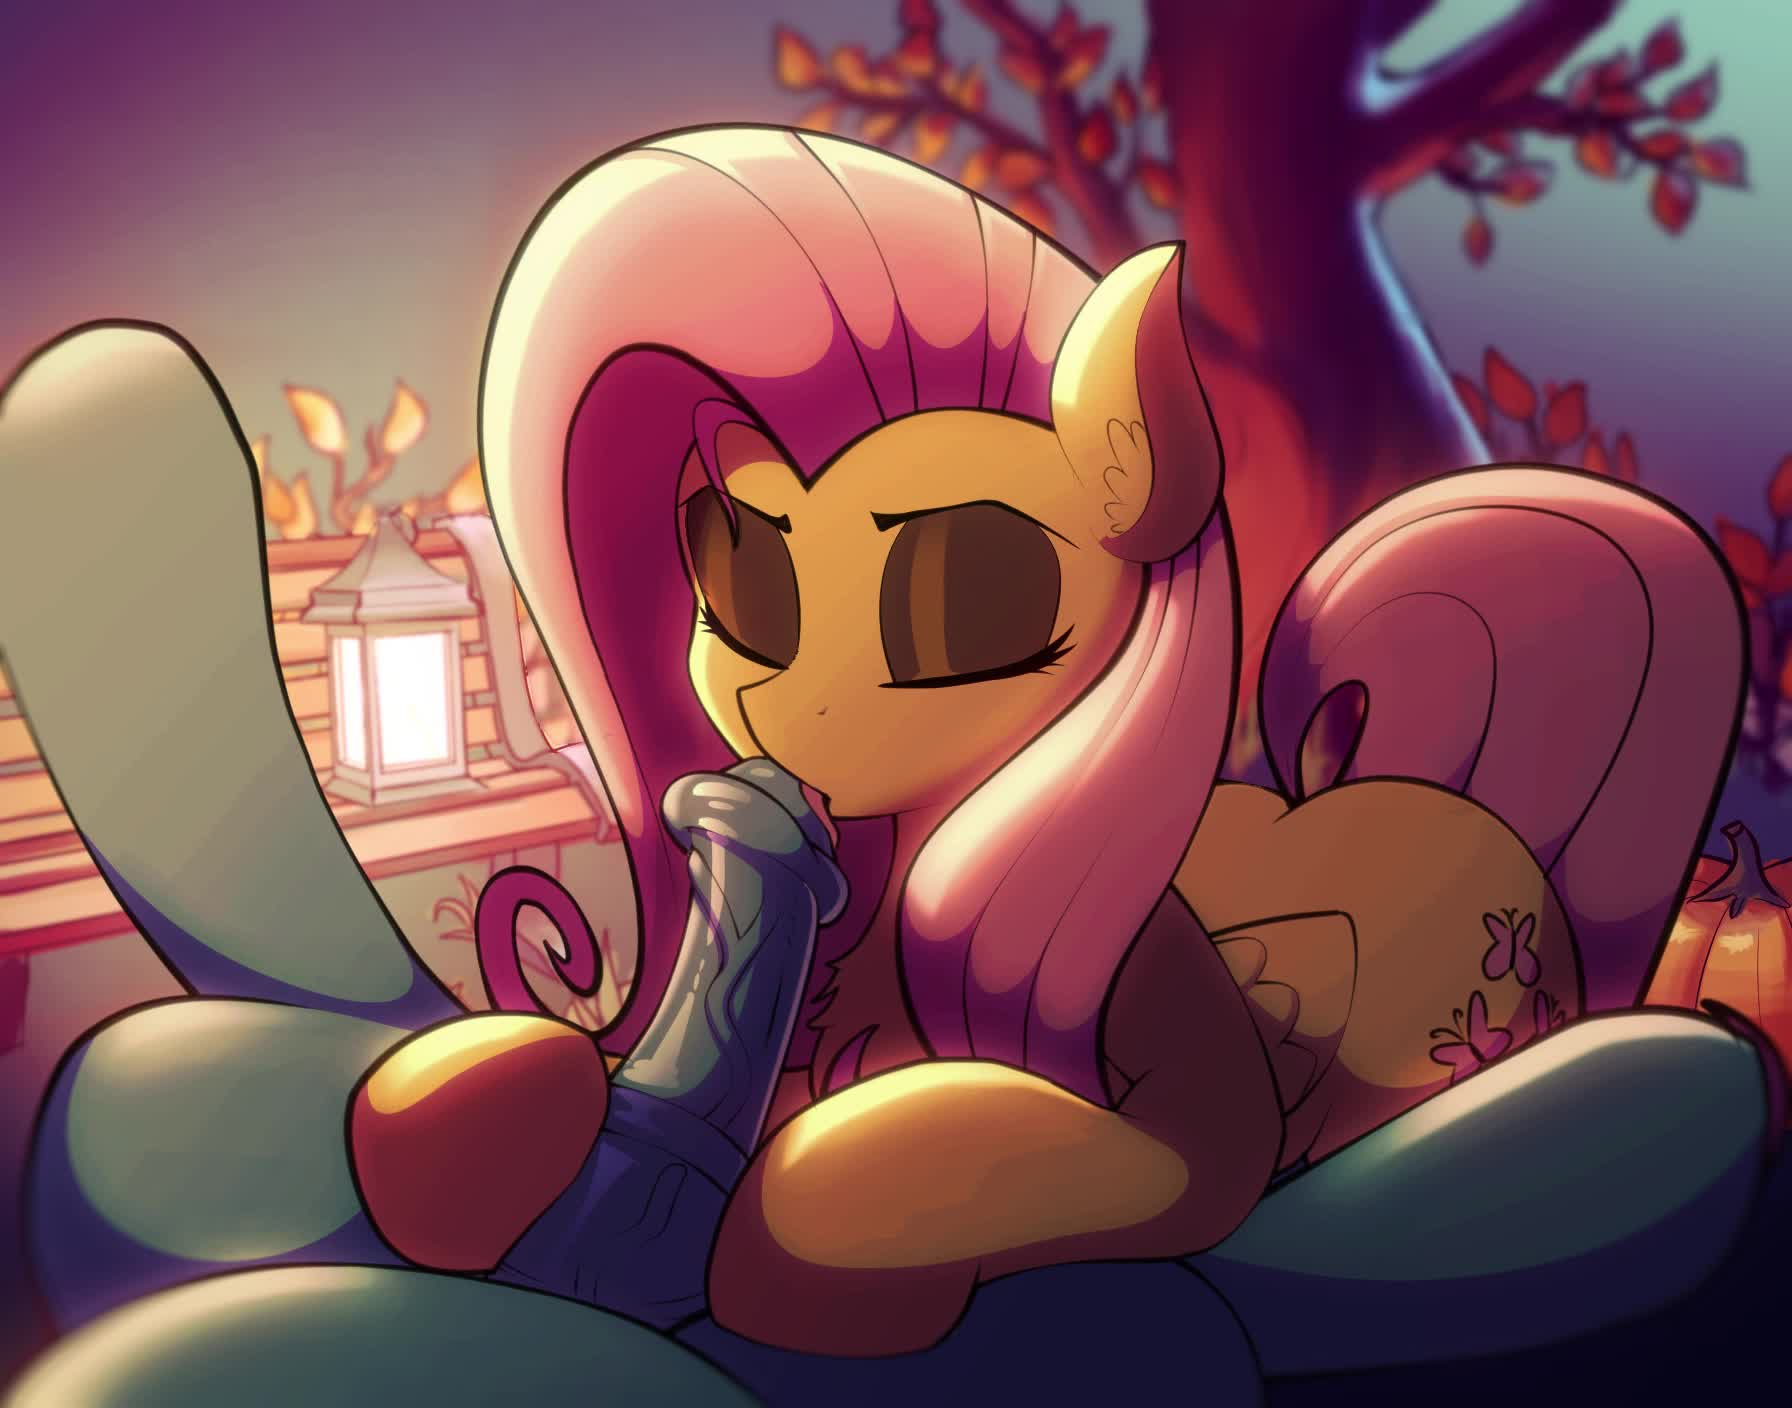 Fluttershy giving the good suck [Artist: AbstractUnicorn]